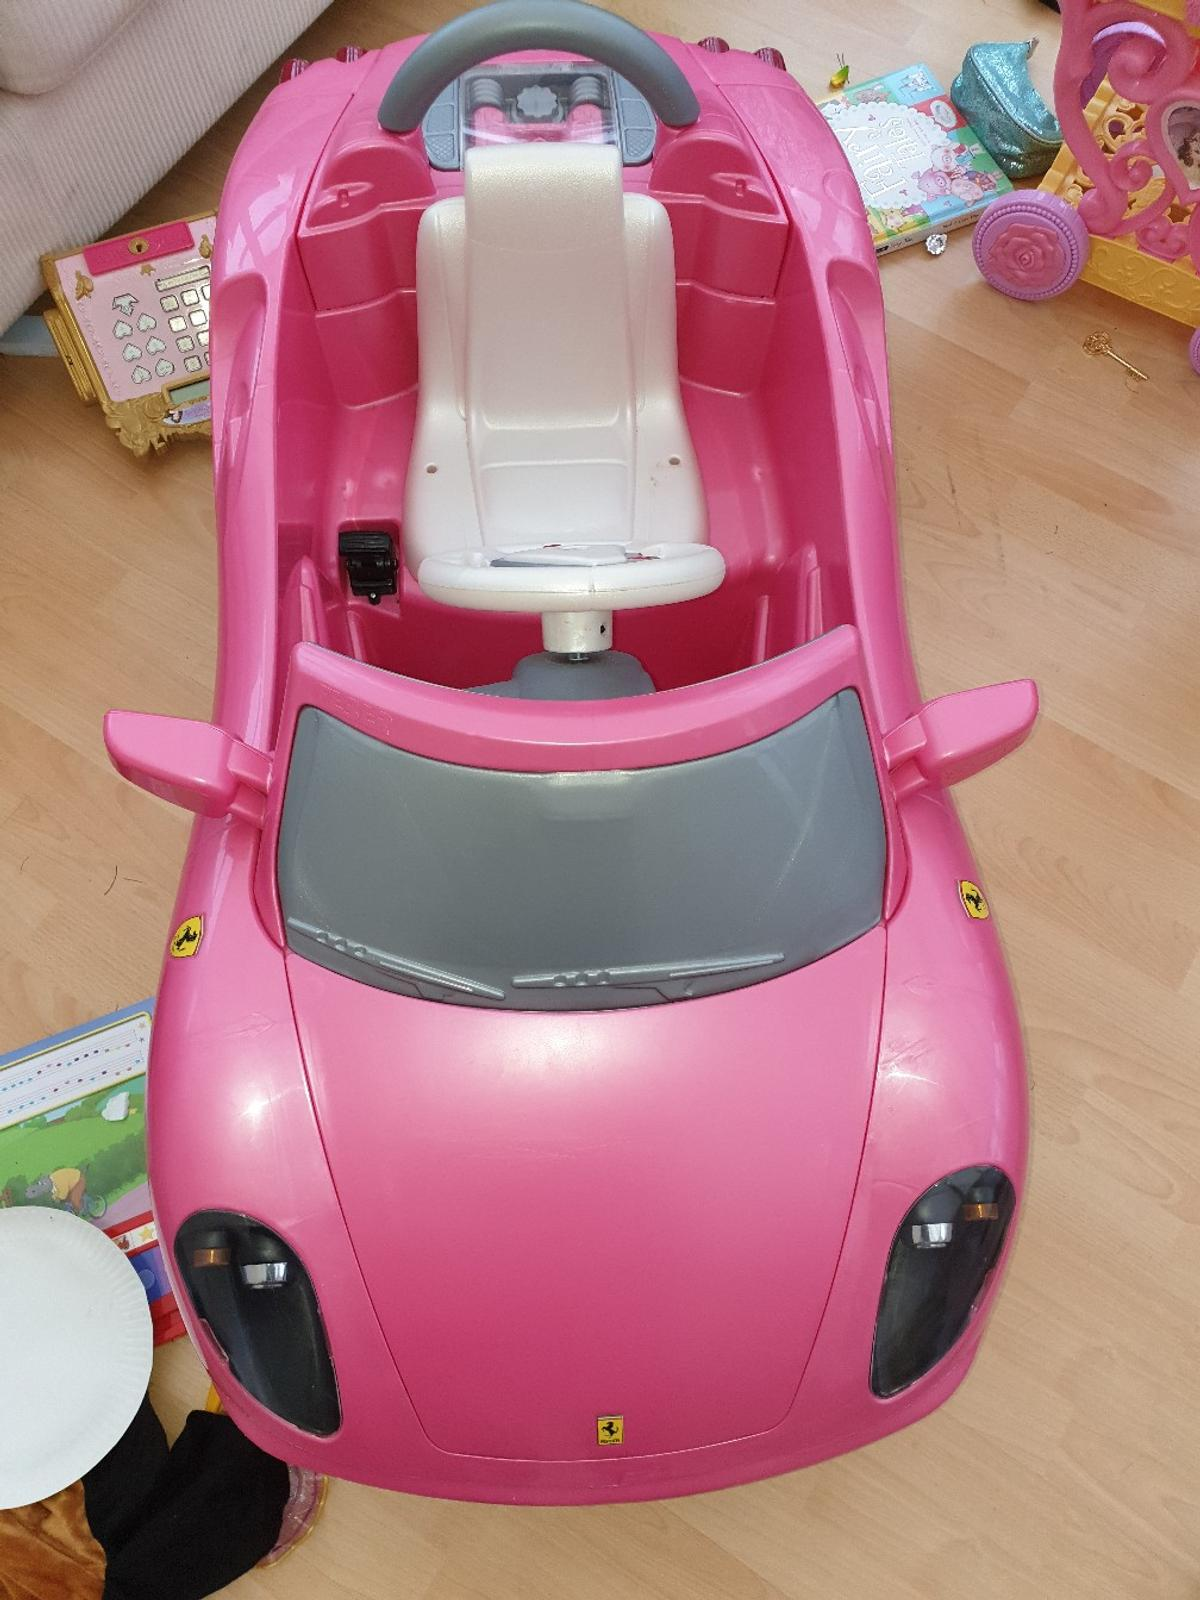 selling this Ferrari car. Still in great condition:) open to reasonable offers.